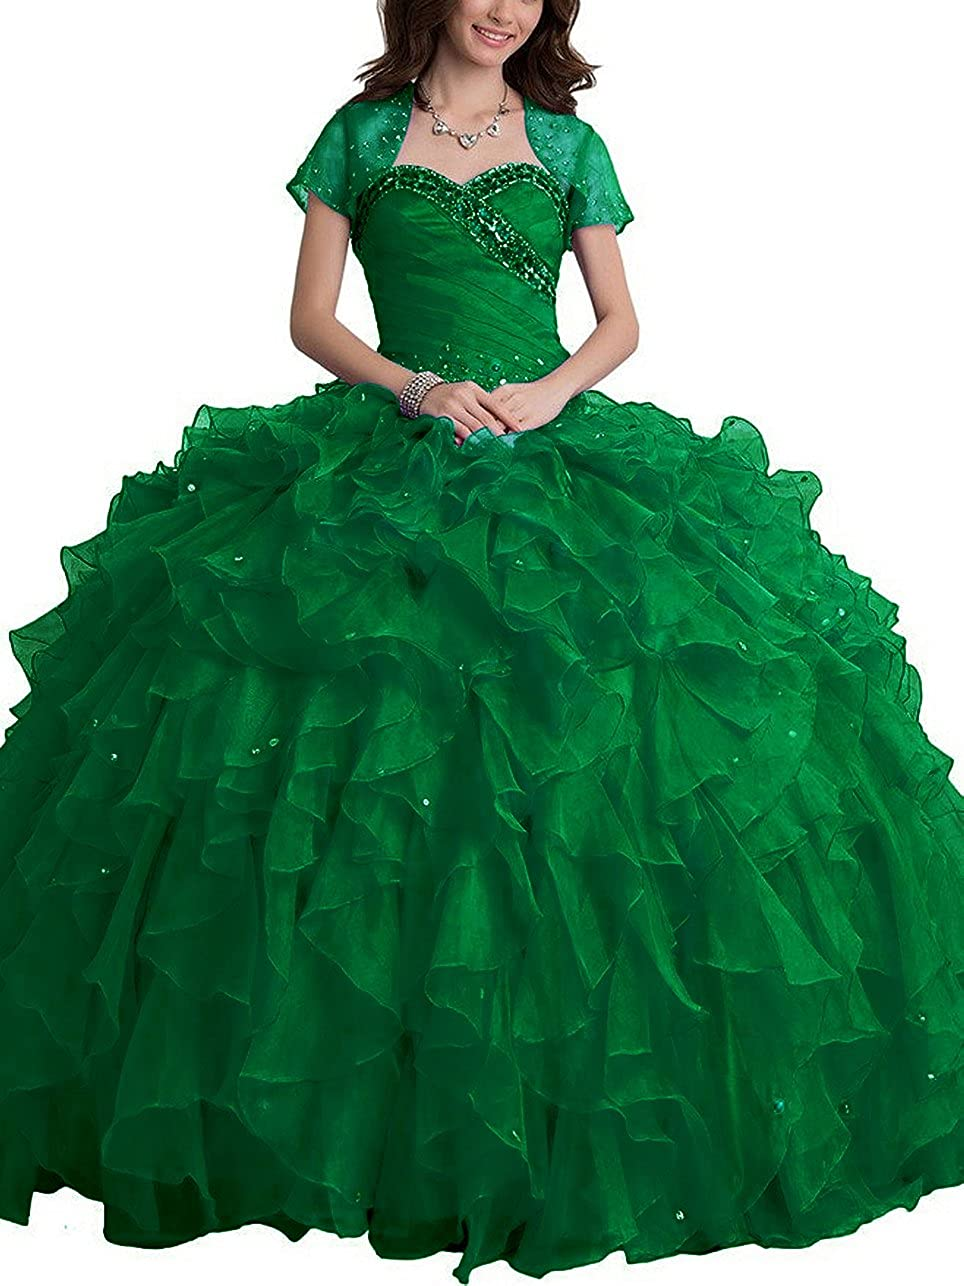 Emerald Green SDRESS Women's Rhinestones Sweetheart Ball Gown Tulle Quinceanera Dress with Wrap